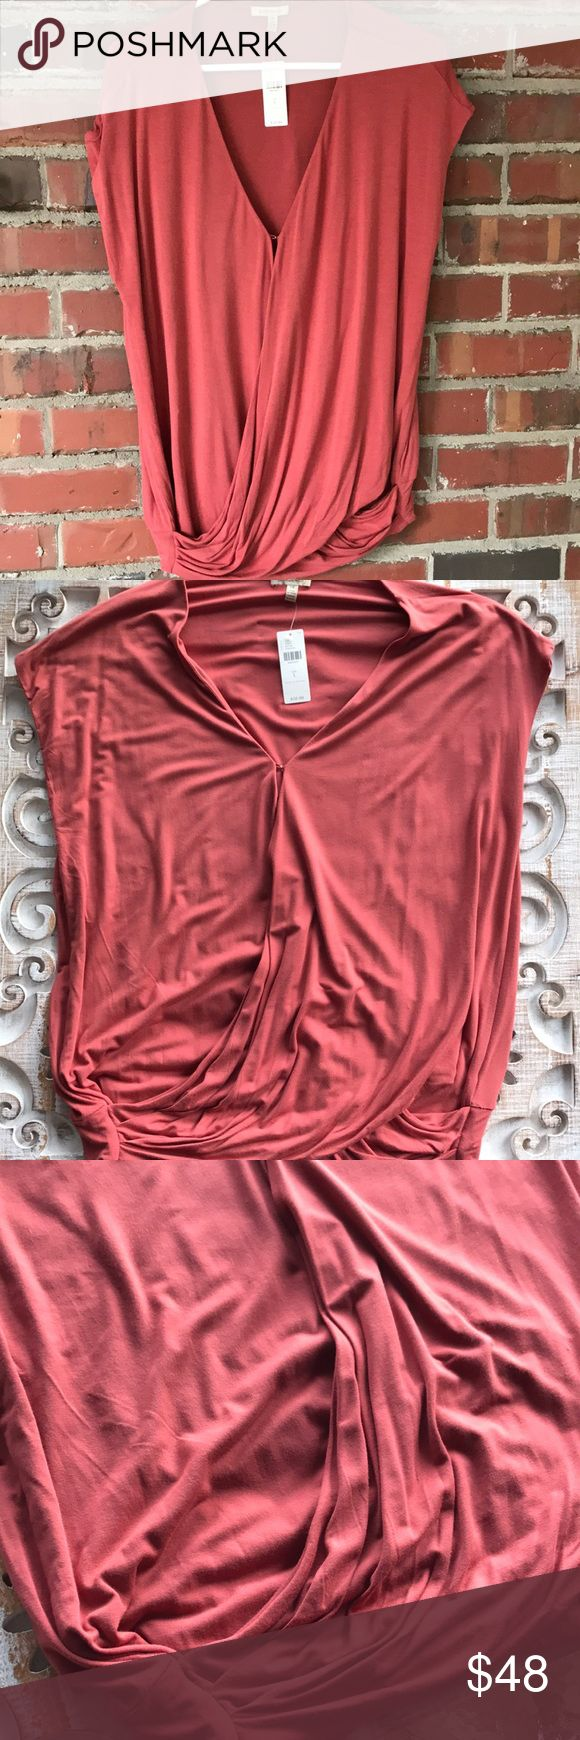 Anthropologie, Bordeaux Top, size L with tags Brand new w/ tag .. this top has a very pretty wrap look with a hook closure at the chest.  Smoke free home Tops Tees - Short Sleeve